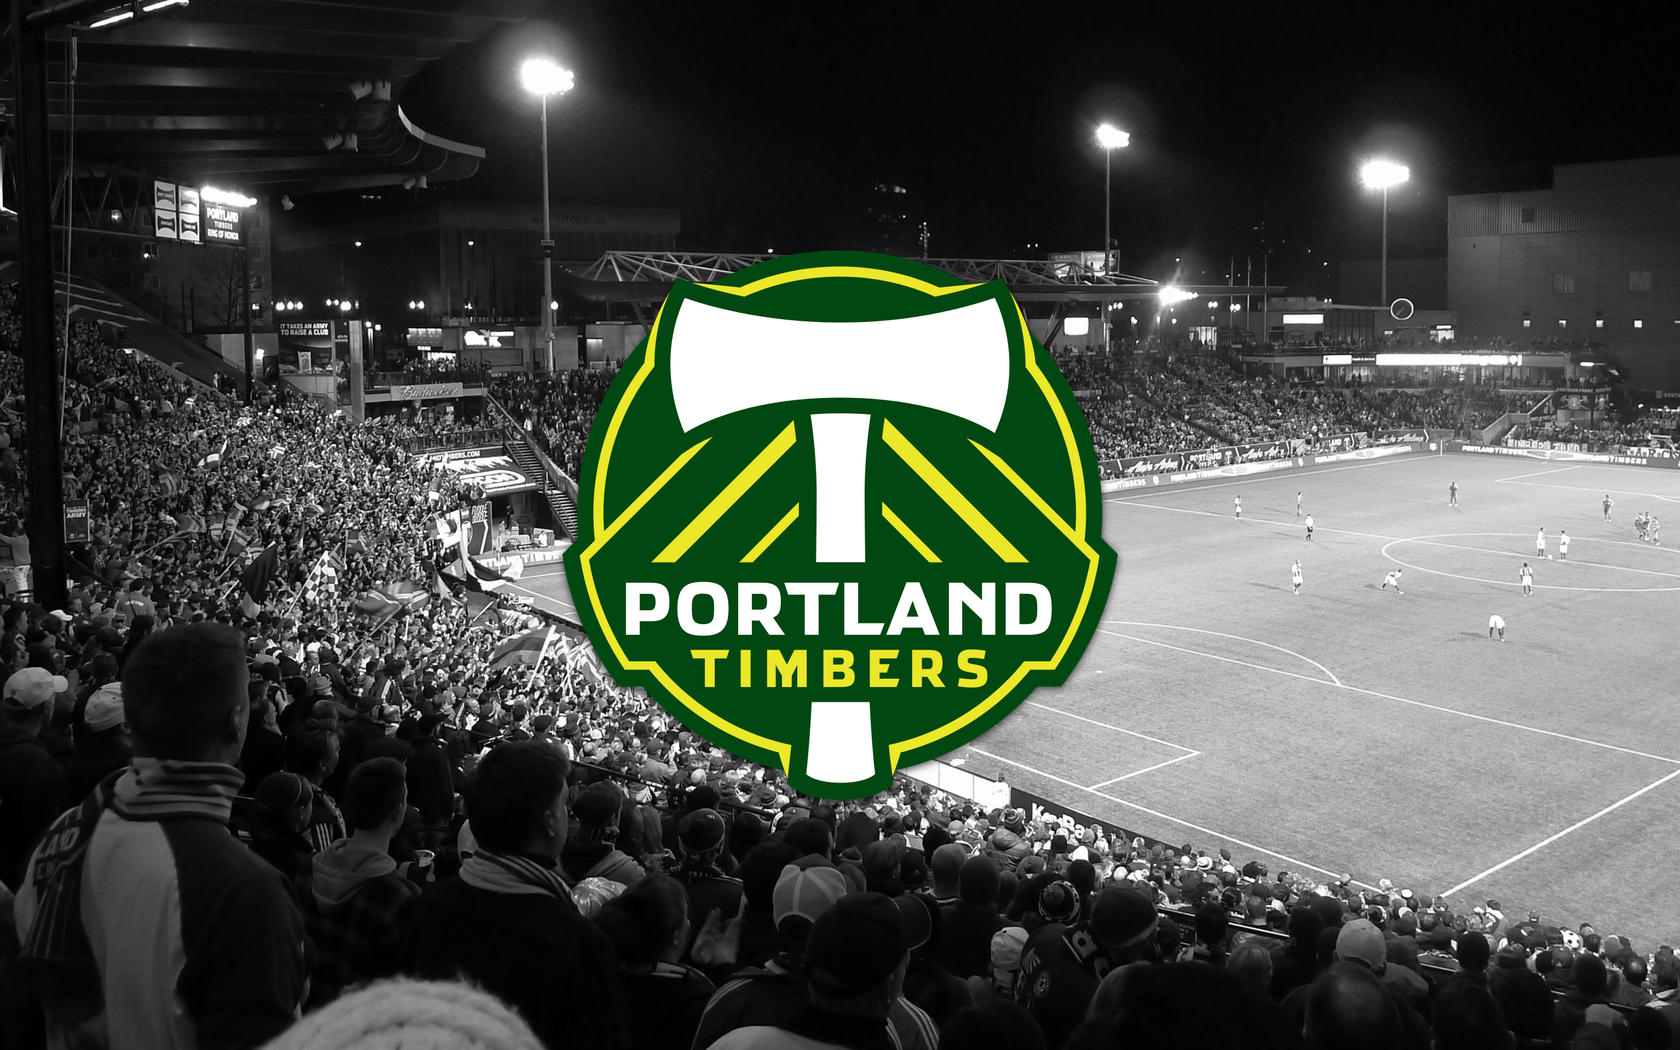 Portland Timbers Wallpapers 12